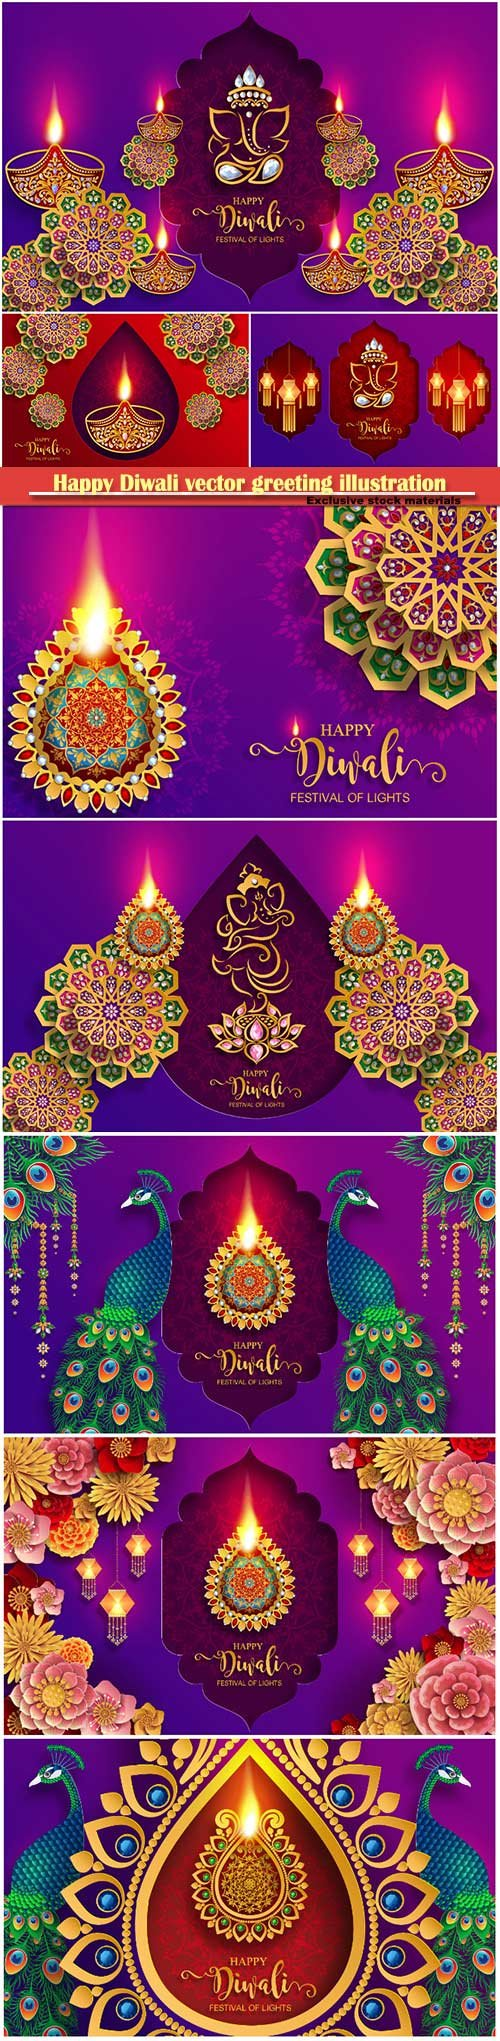 Happy Diwali vector greeting illustration template